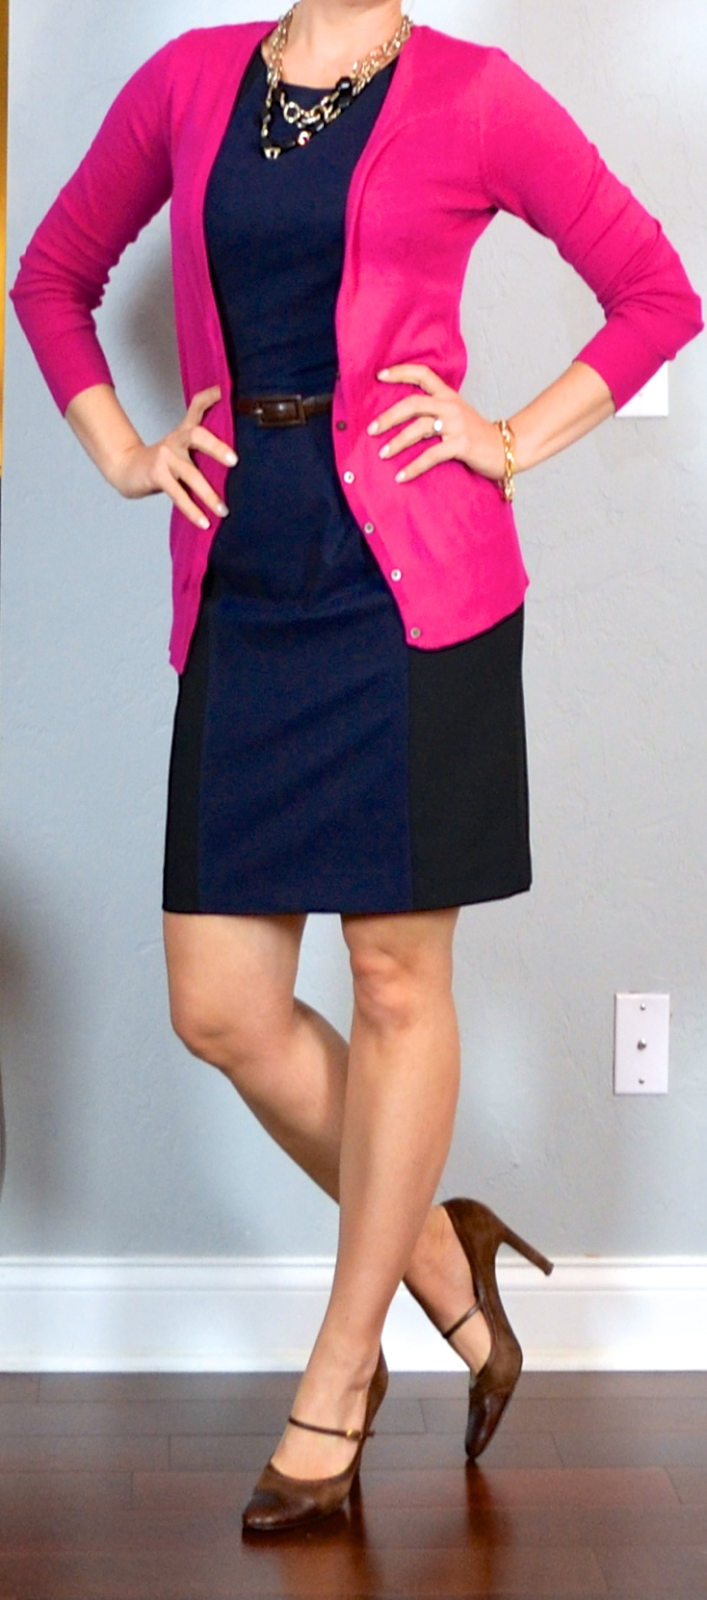 Outfit post pink cardigan colorblocked sheath dress brown mary janes | Outfit Posts